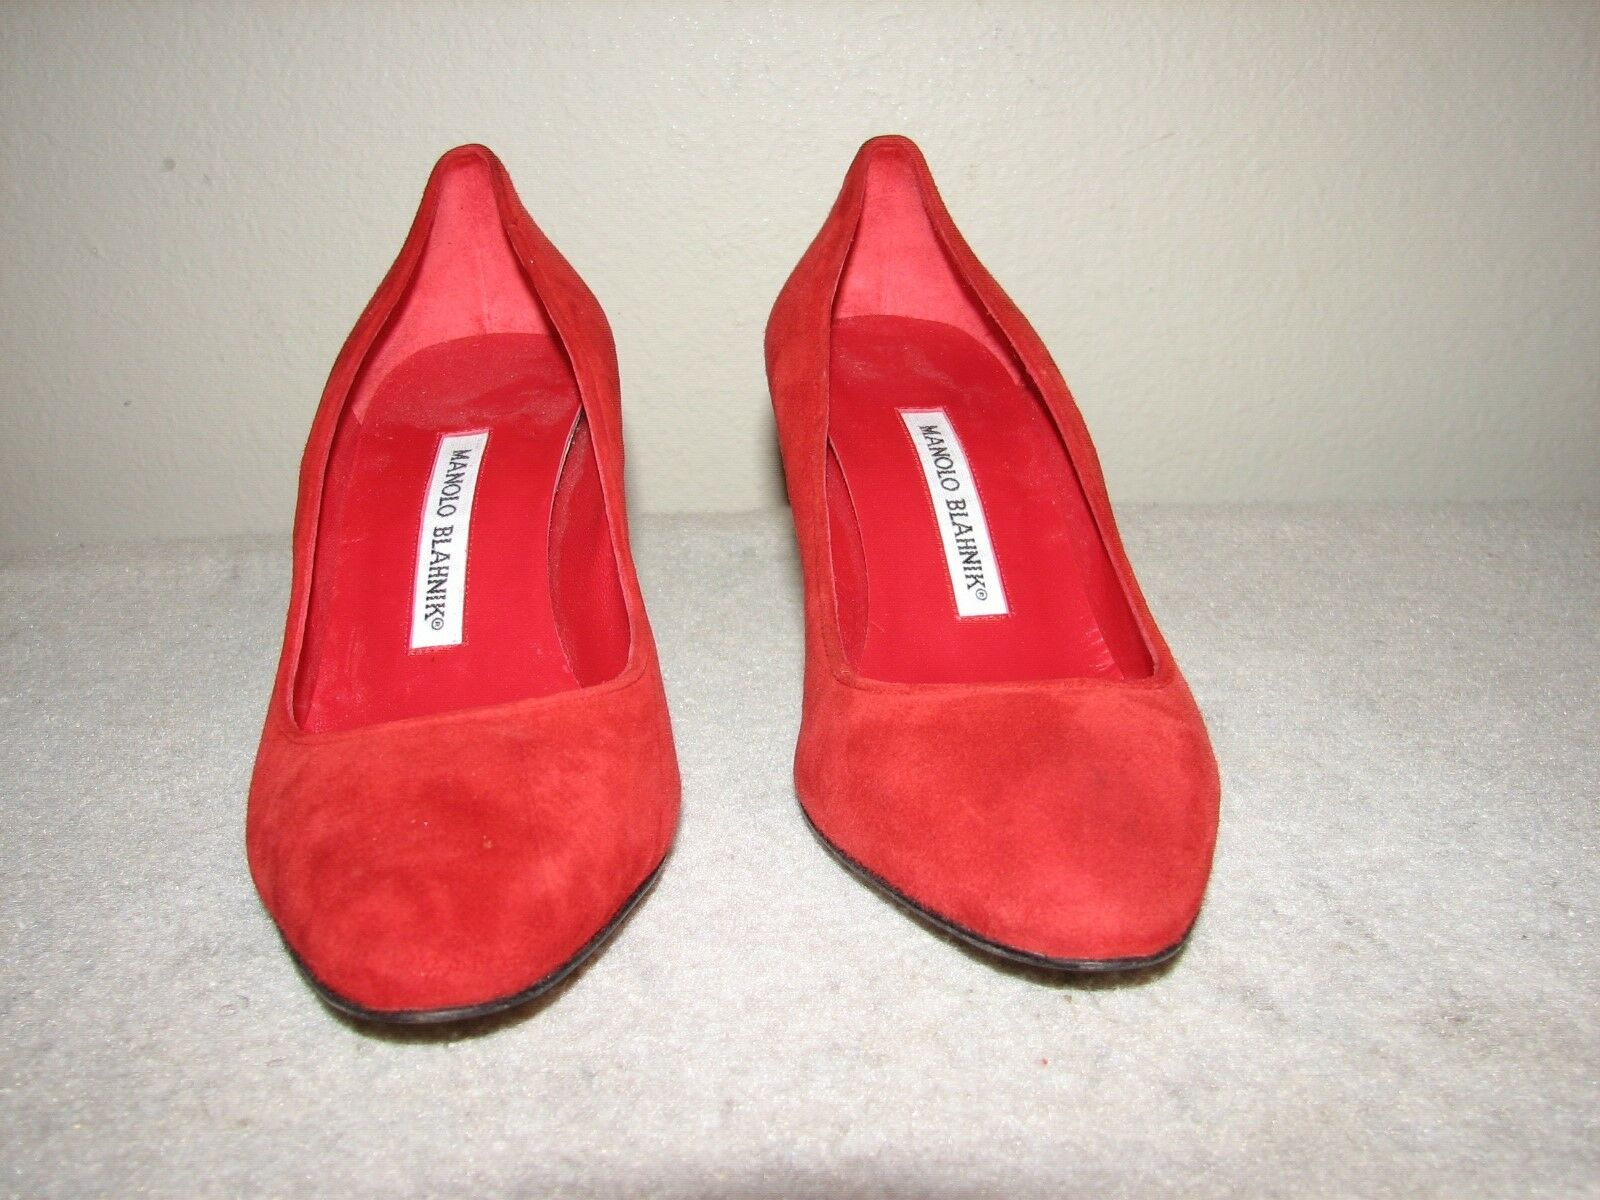 699 New Manolo Blahnik Red Suede Pumps Heels shoes 38 8 HAND MADE in